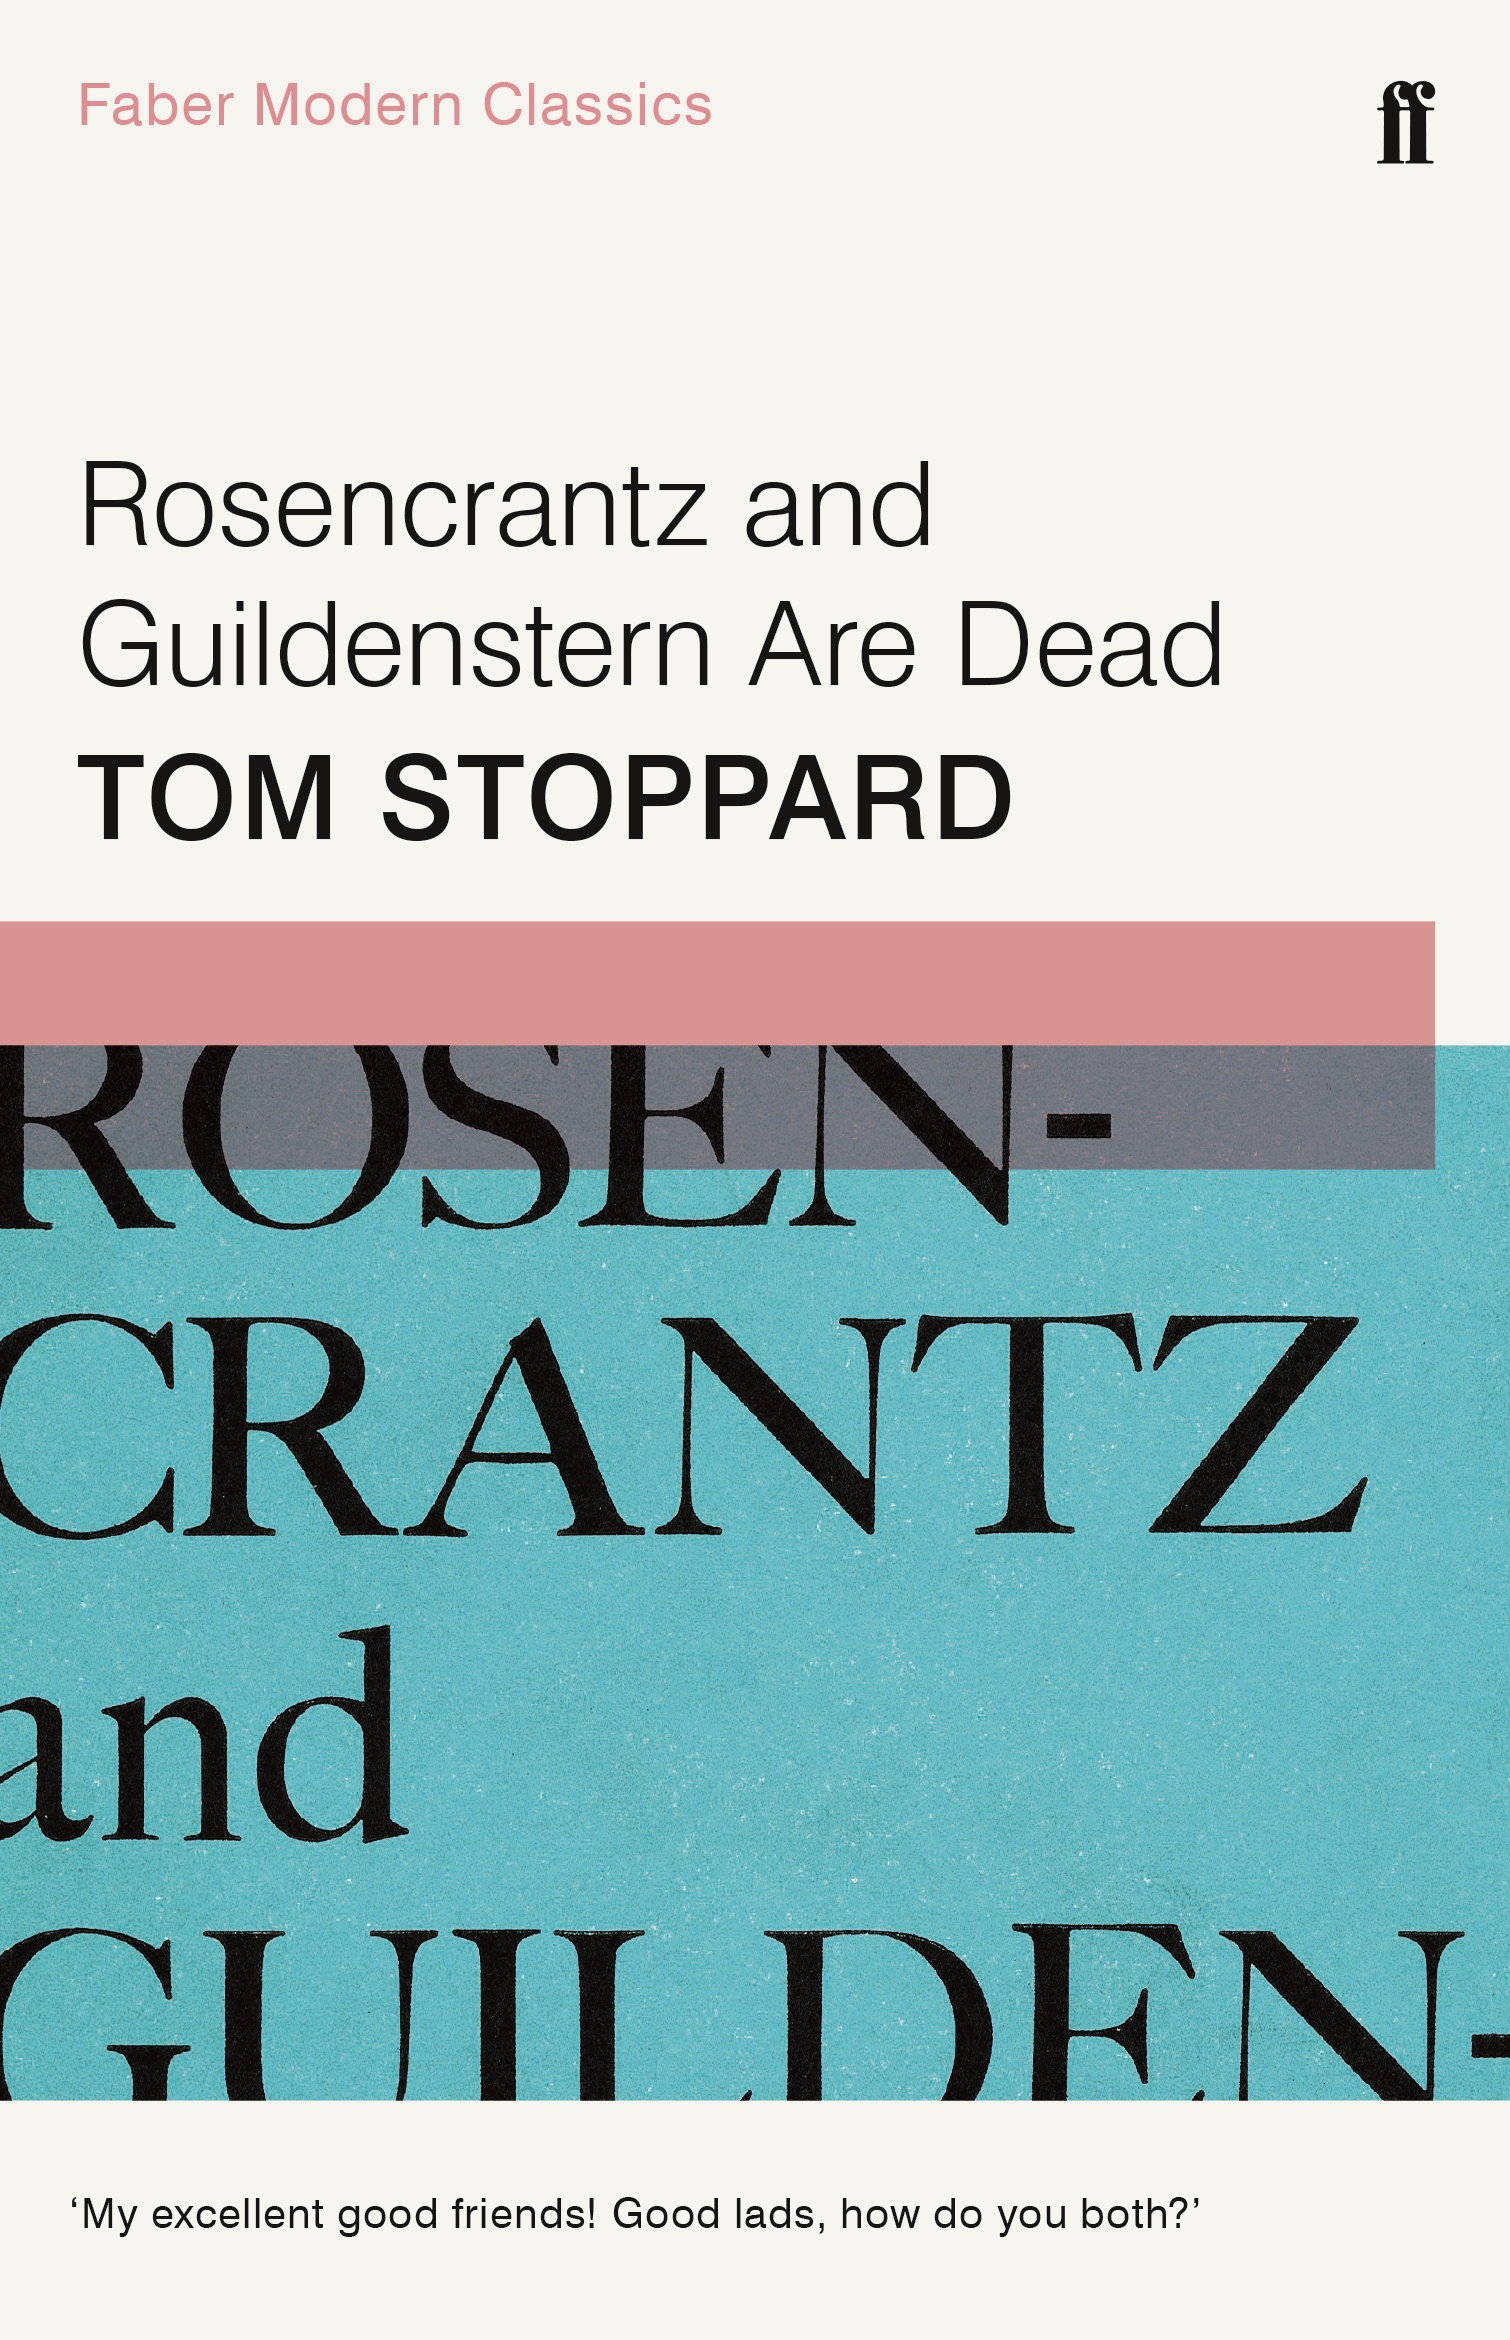 a response to rosencrantz and guildenstern are dead a play by tom stoppard Rosencrantz and guildenstern are dead, often referred to as just rosencrantz and guildenstern, is an absurdist, existential tragicomedy by tom stoppard.